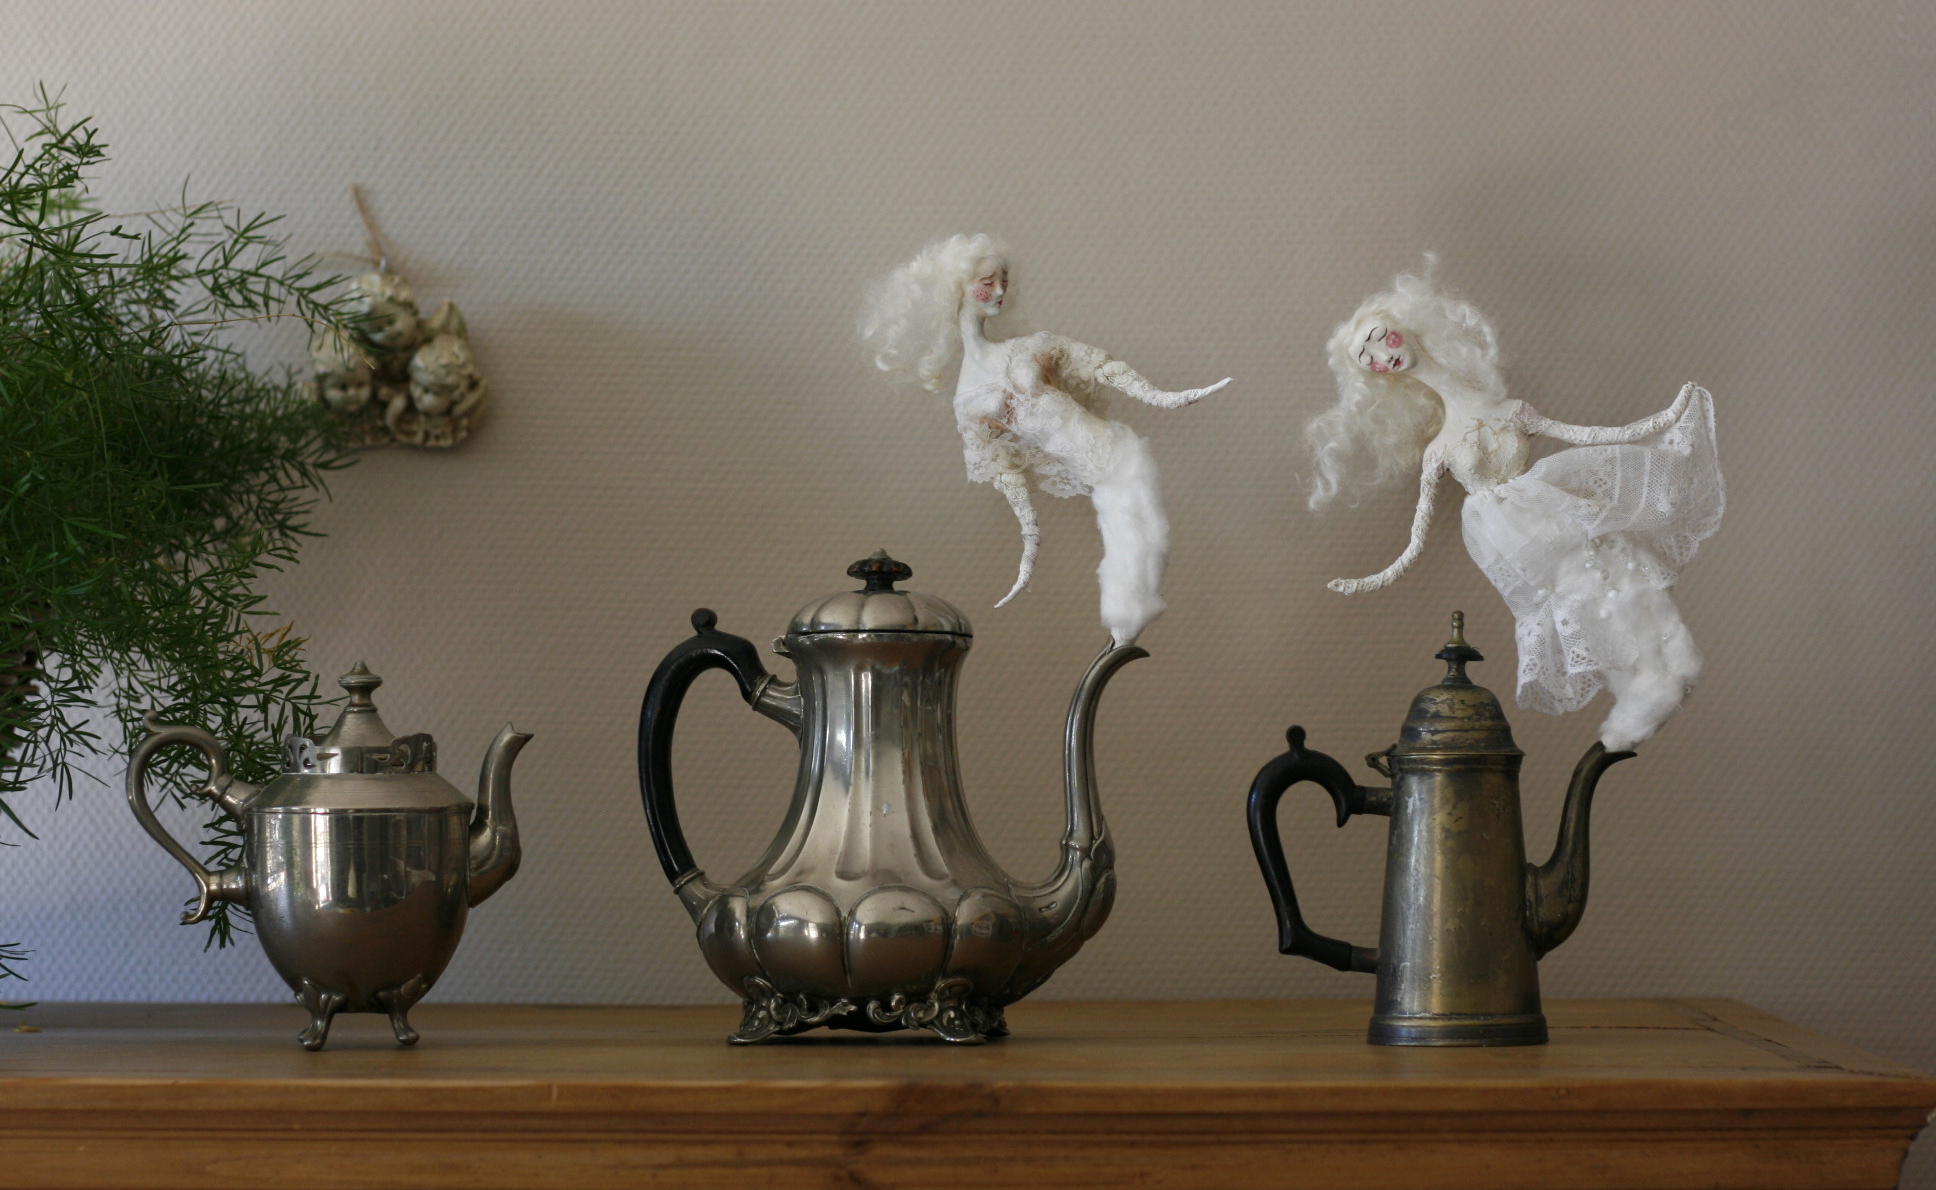 The Teapot Ghosts